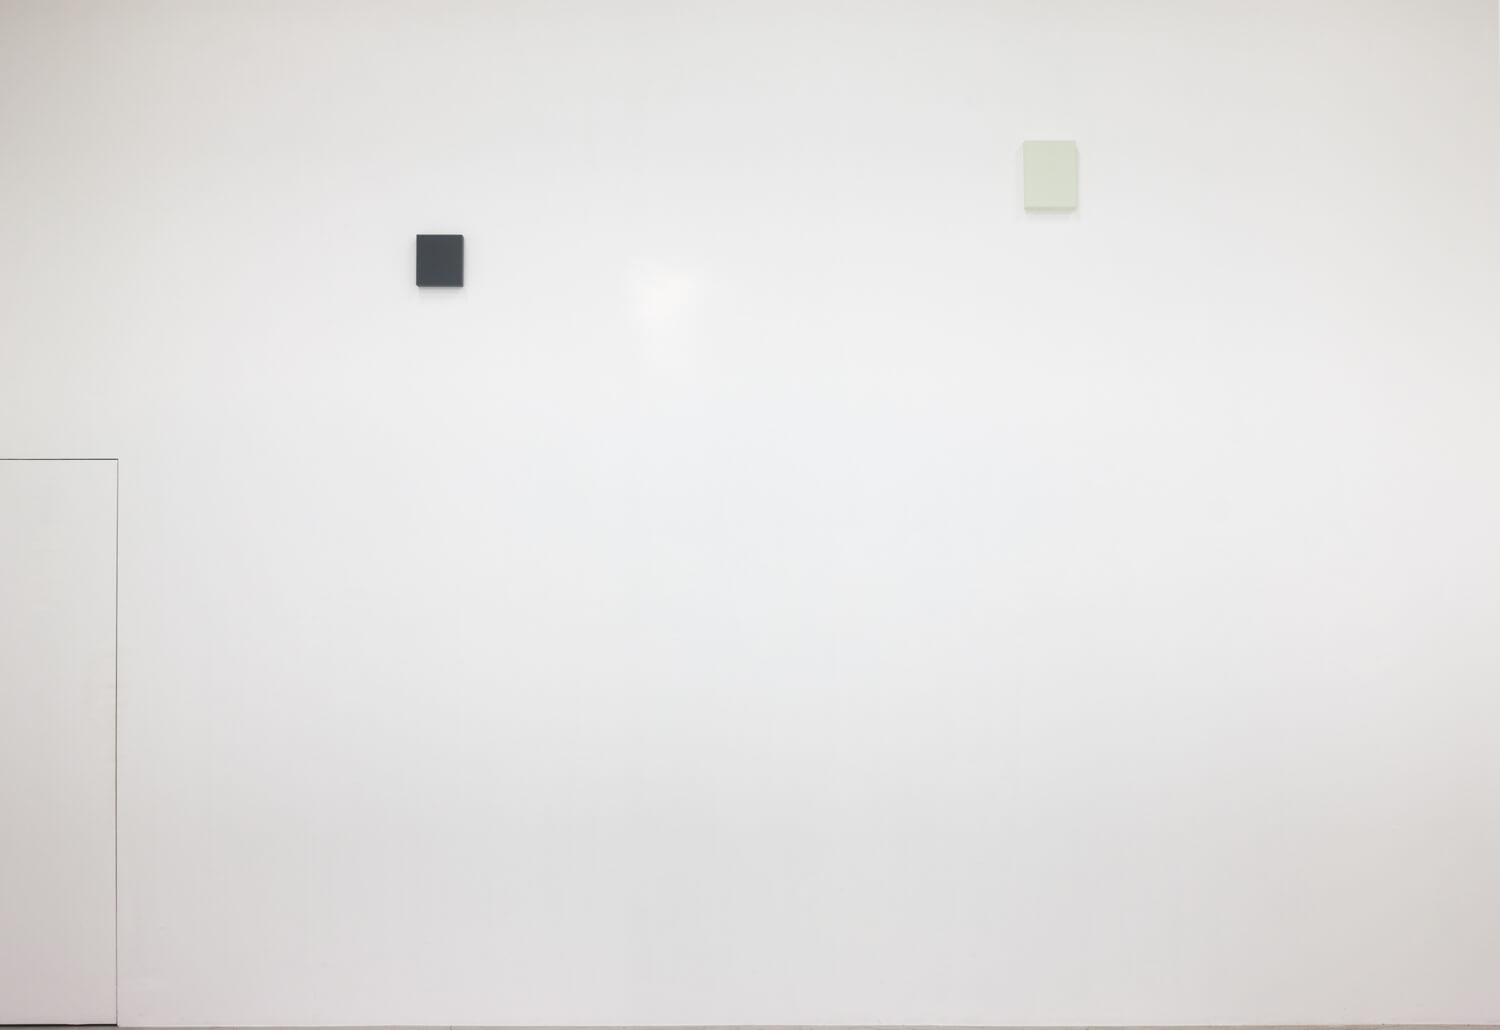 half note_gray, silkscreen on perspex, 18 x 16 x 4 cm, 2018 (left)<br>half note_light gray, silkscreen on perspex, 24 x 18 x 4 cm, 2018 (right)